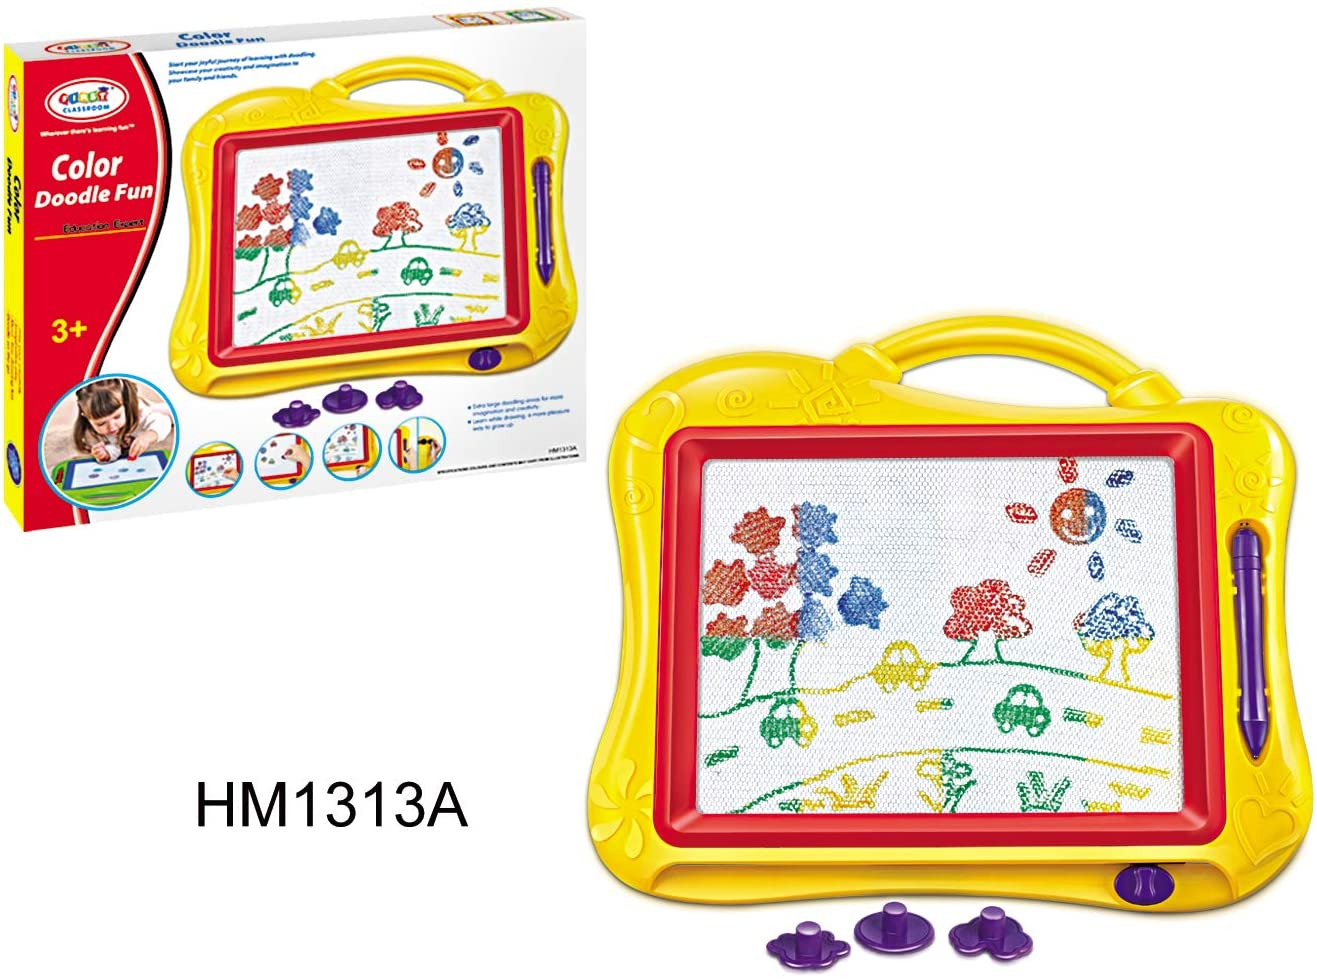 First Classroom Portable Magnetic Drawing Doodle Board - Learning Education Fun Activity Playset - Multicolor Writing Learning Tool - Touch and Stimulation - Sketch Pad Toy (Yellow)